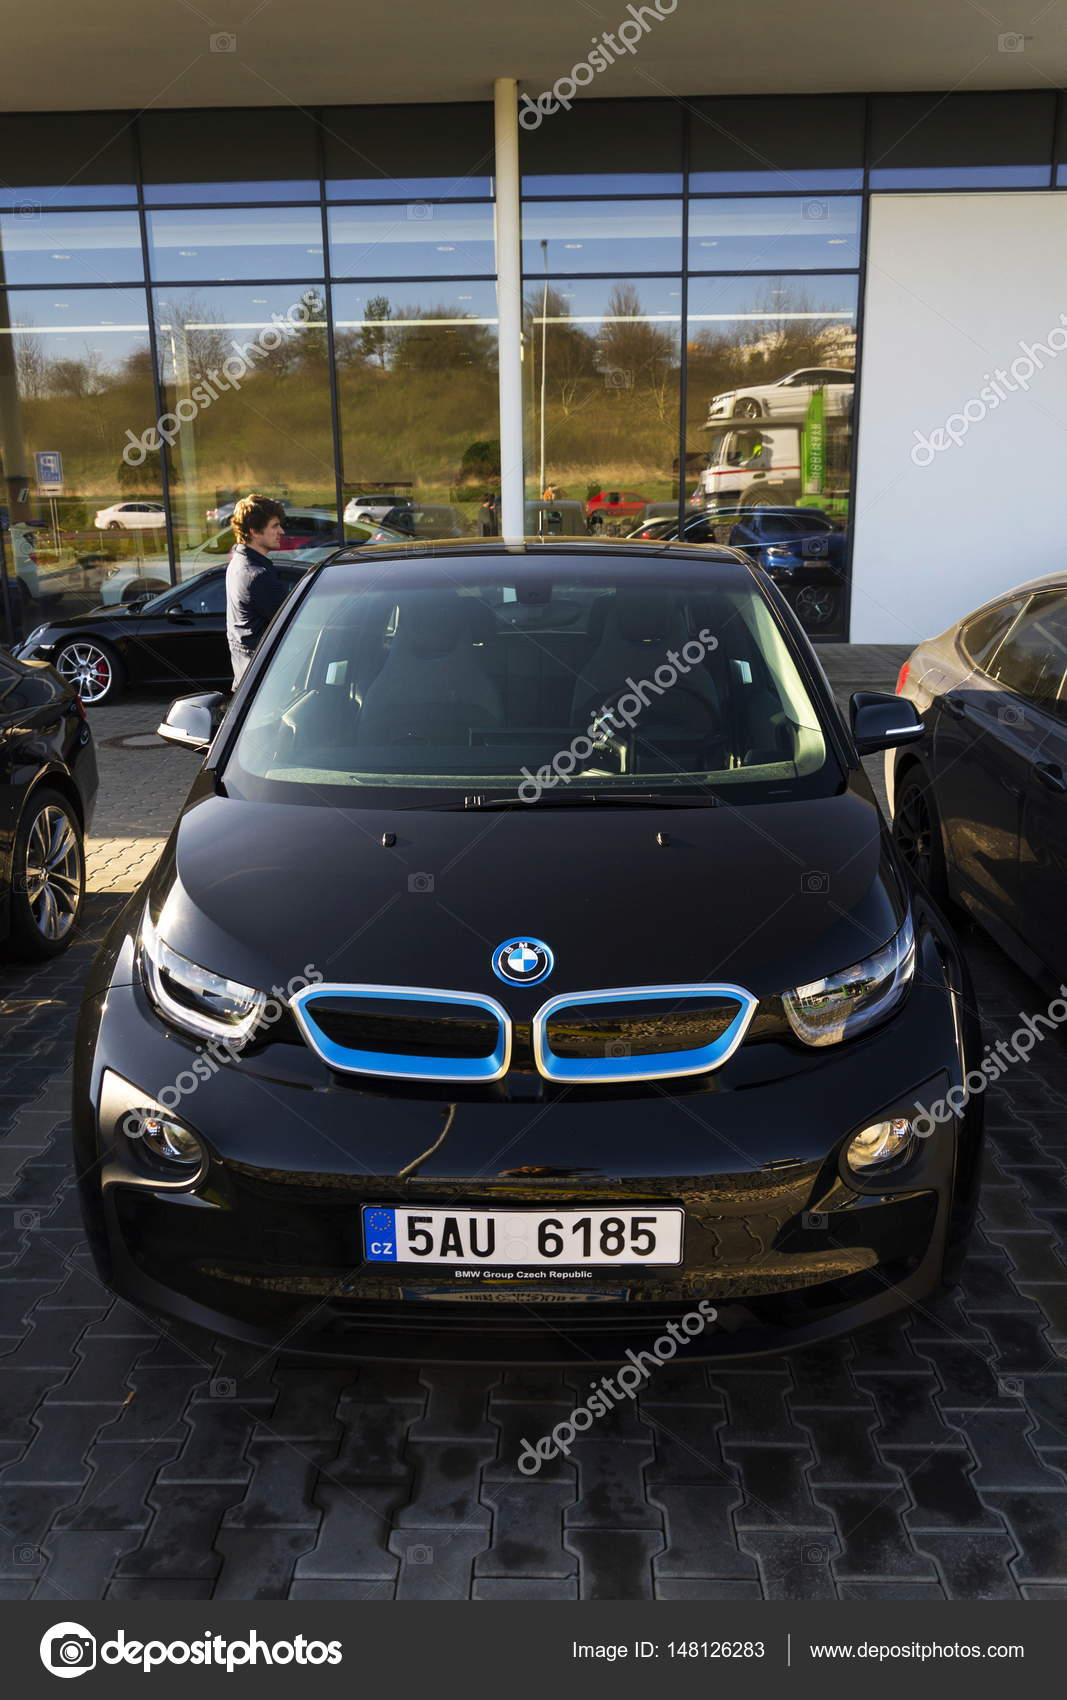 Bmw I3 Car Company Logo In Front Of Dealership Building On March 31